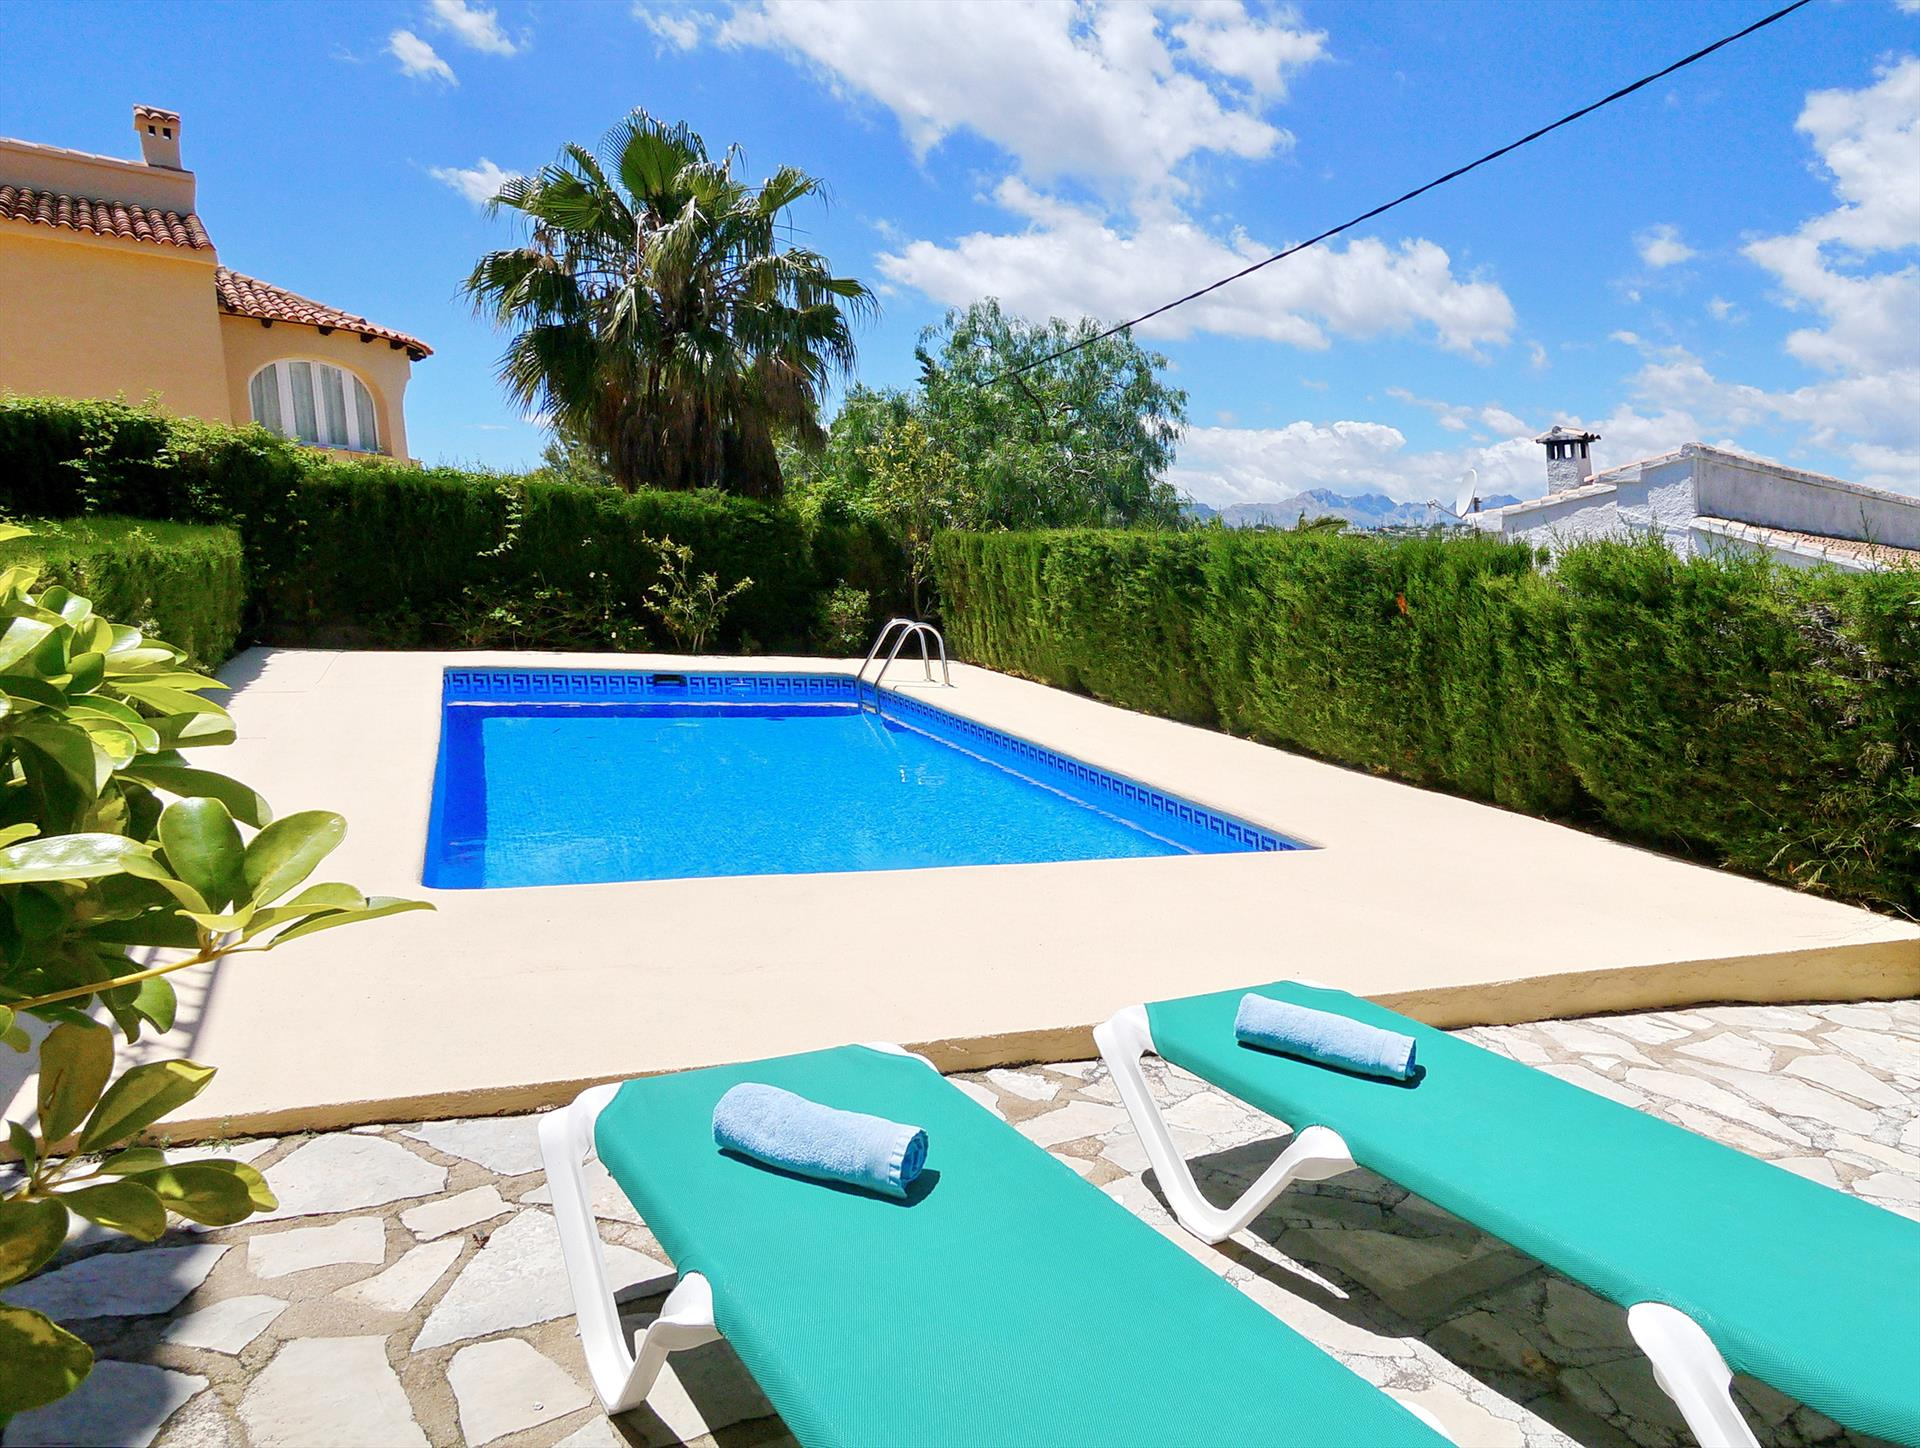 Josyan 6, Beautiful and comfortable villa in Benissa, on the Costa Blanca, Spain  with private pool for 6 persons.....